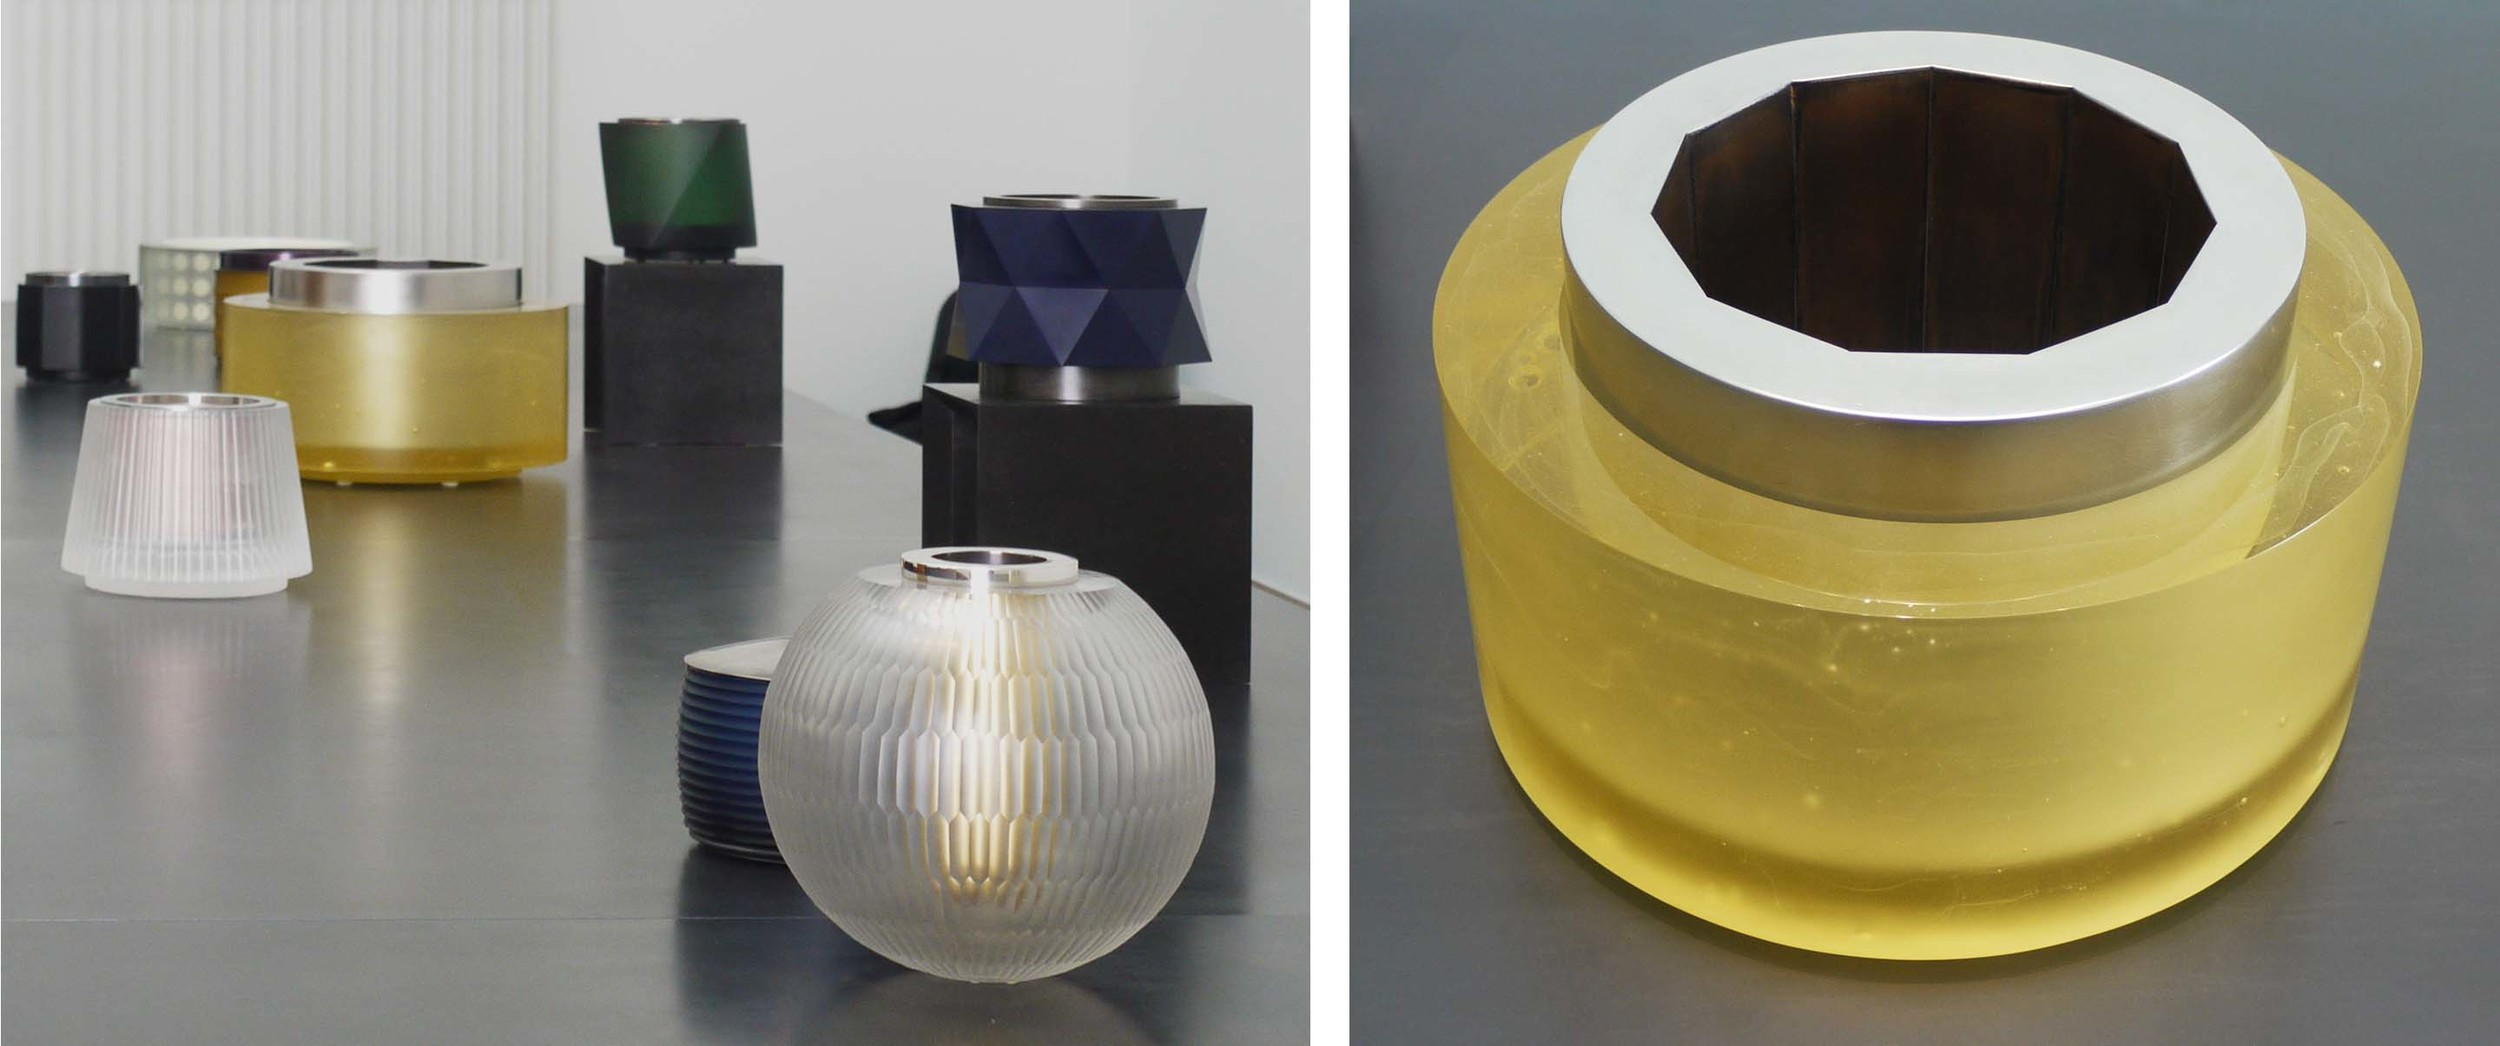 """Left: A quarter of Anna Dickinson's exhibition """"Harmony in Glass"""" on until 1st November. Right: Cast Yellow Vessel with a Hendecagon Steel Liner 2010"""